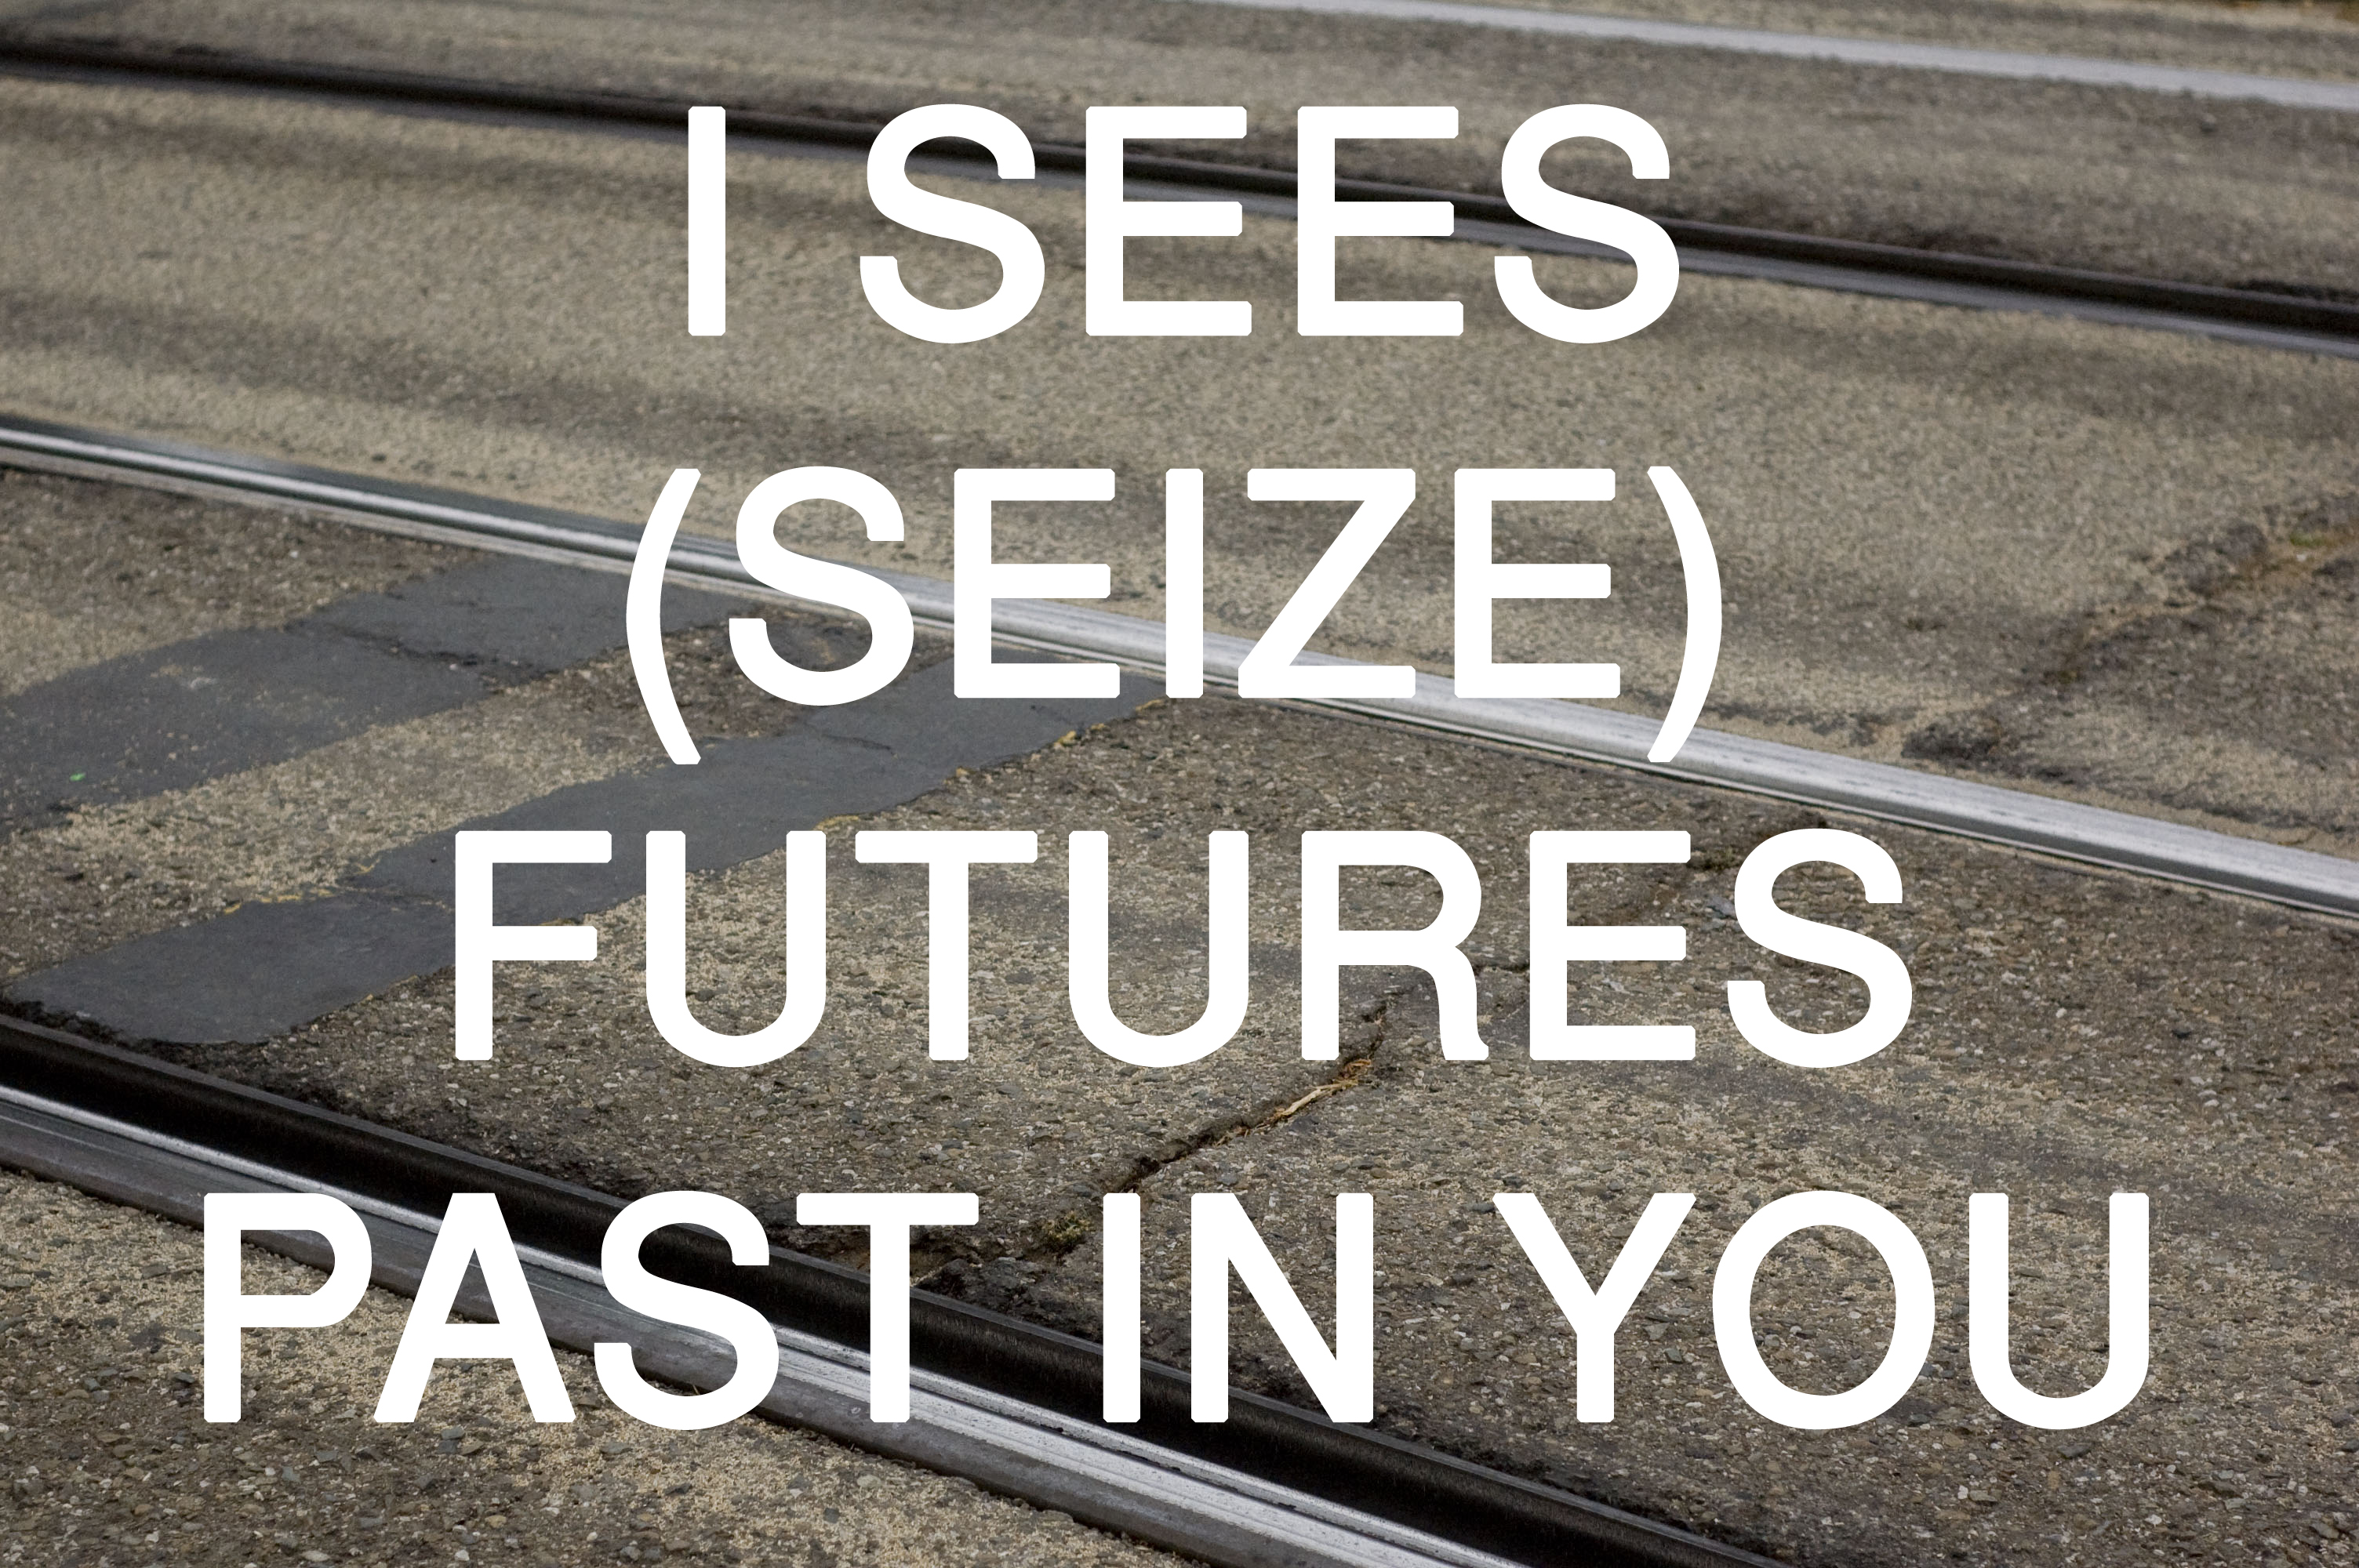 I Sees (Seize) Futures Past in You